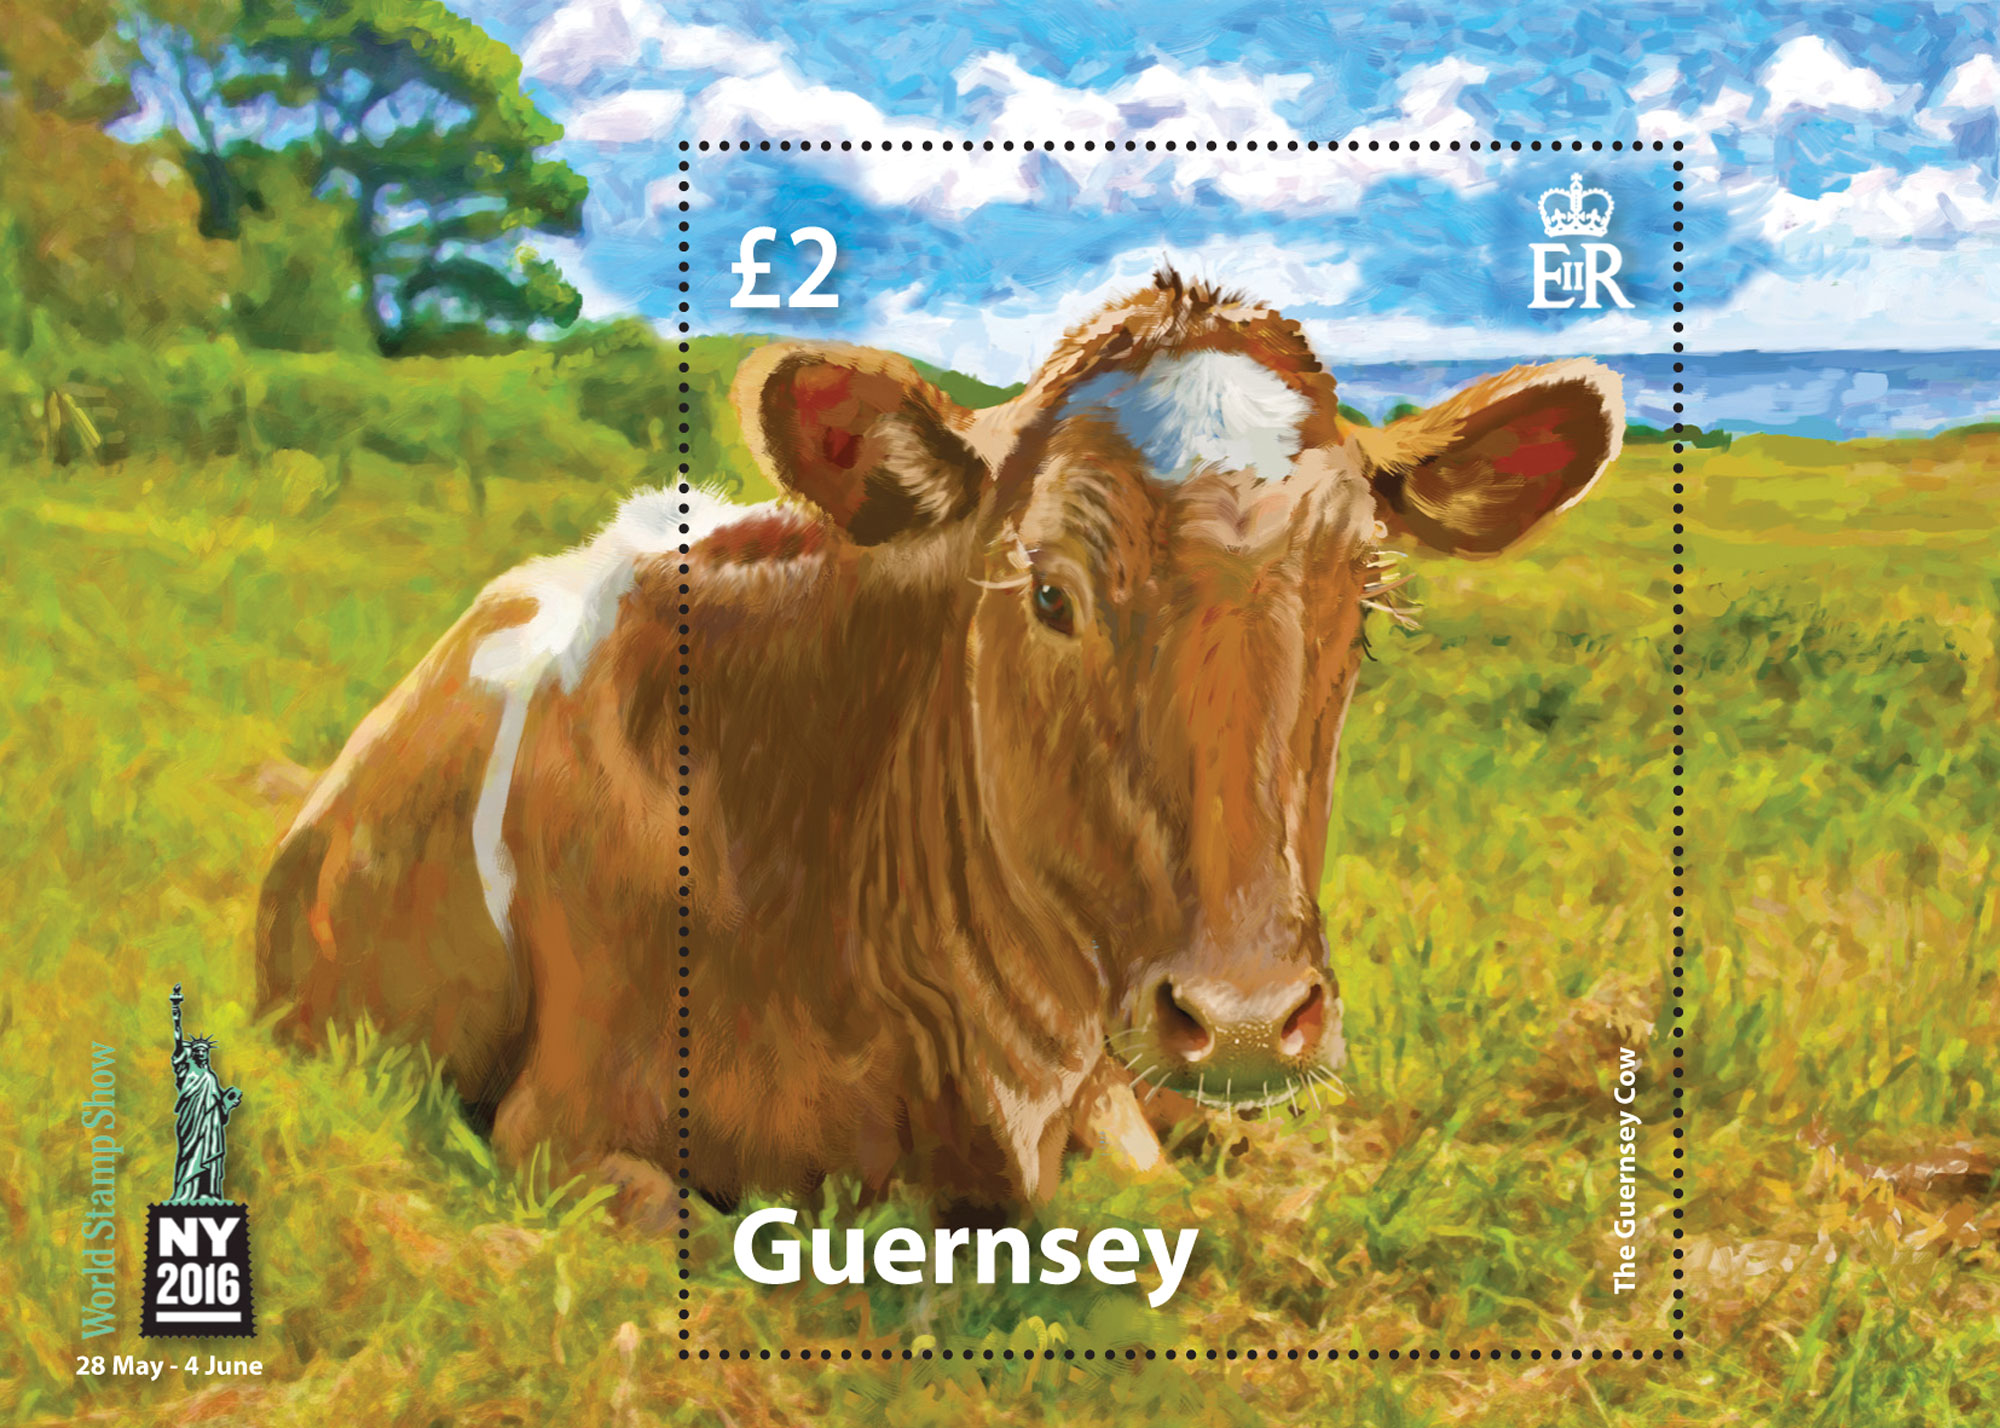 Guernsey Stamps attend World Stamp Show NY2016